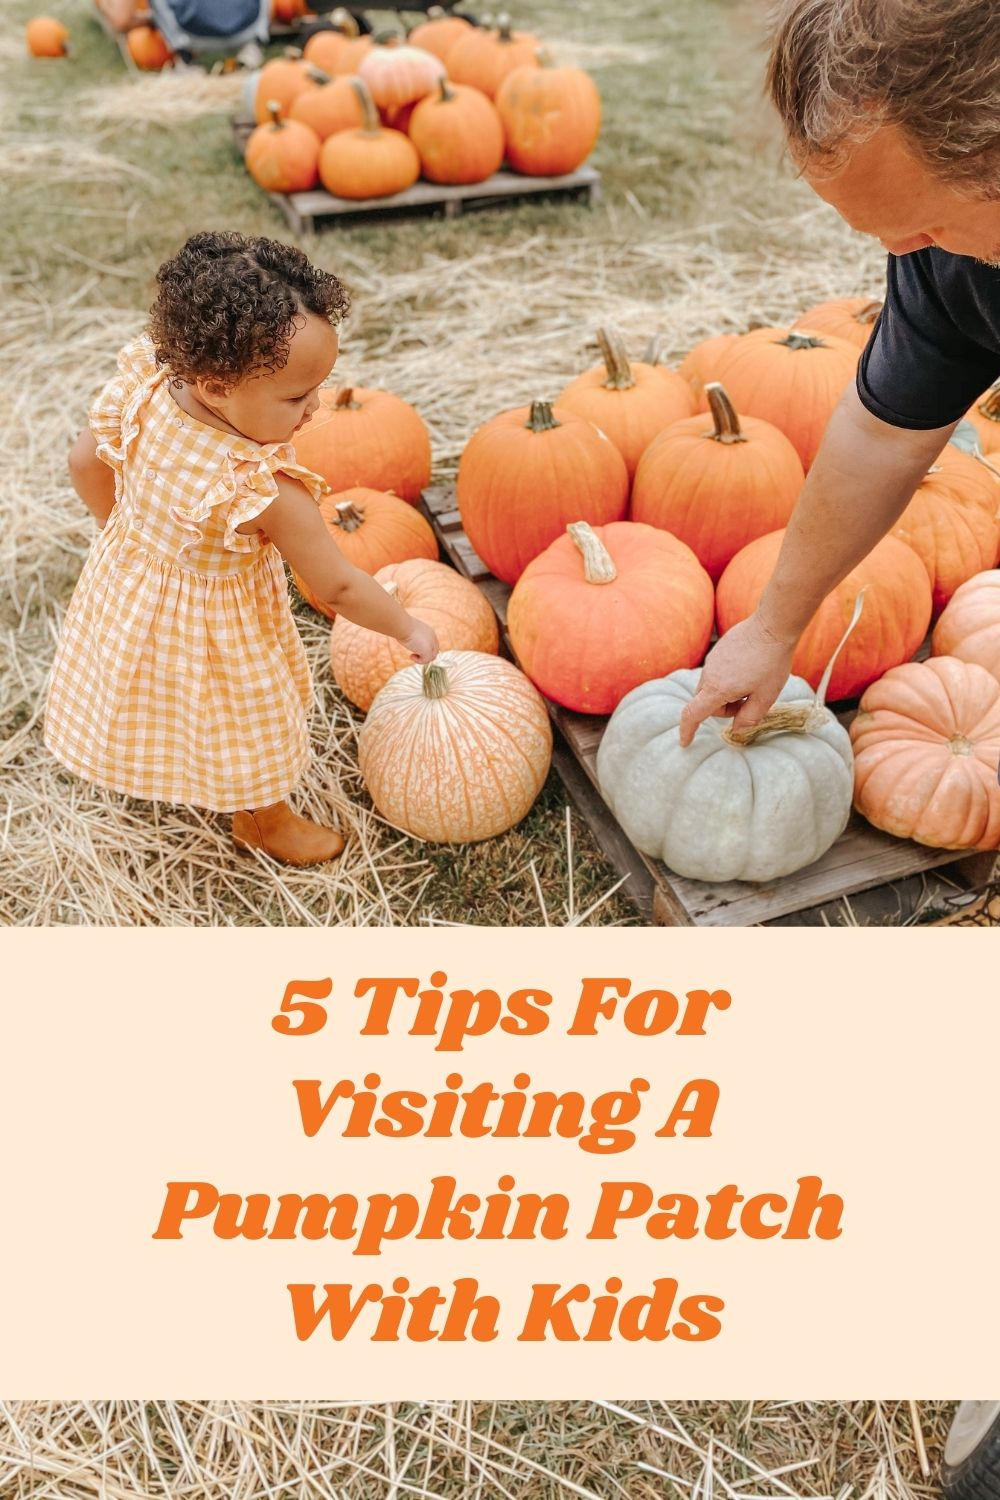 5 Tips For Visiting The Pumpkin Patch With Kids